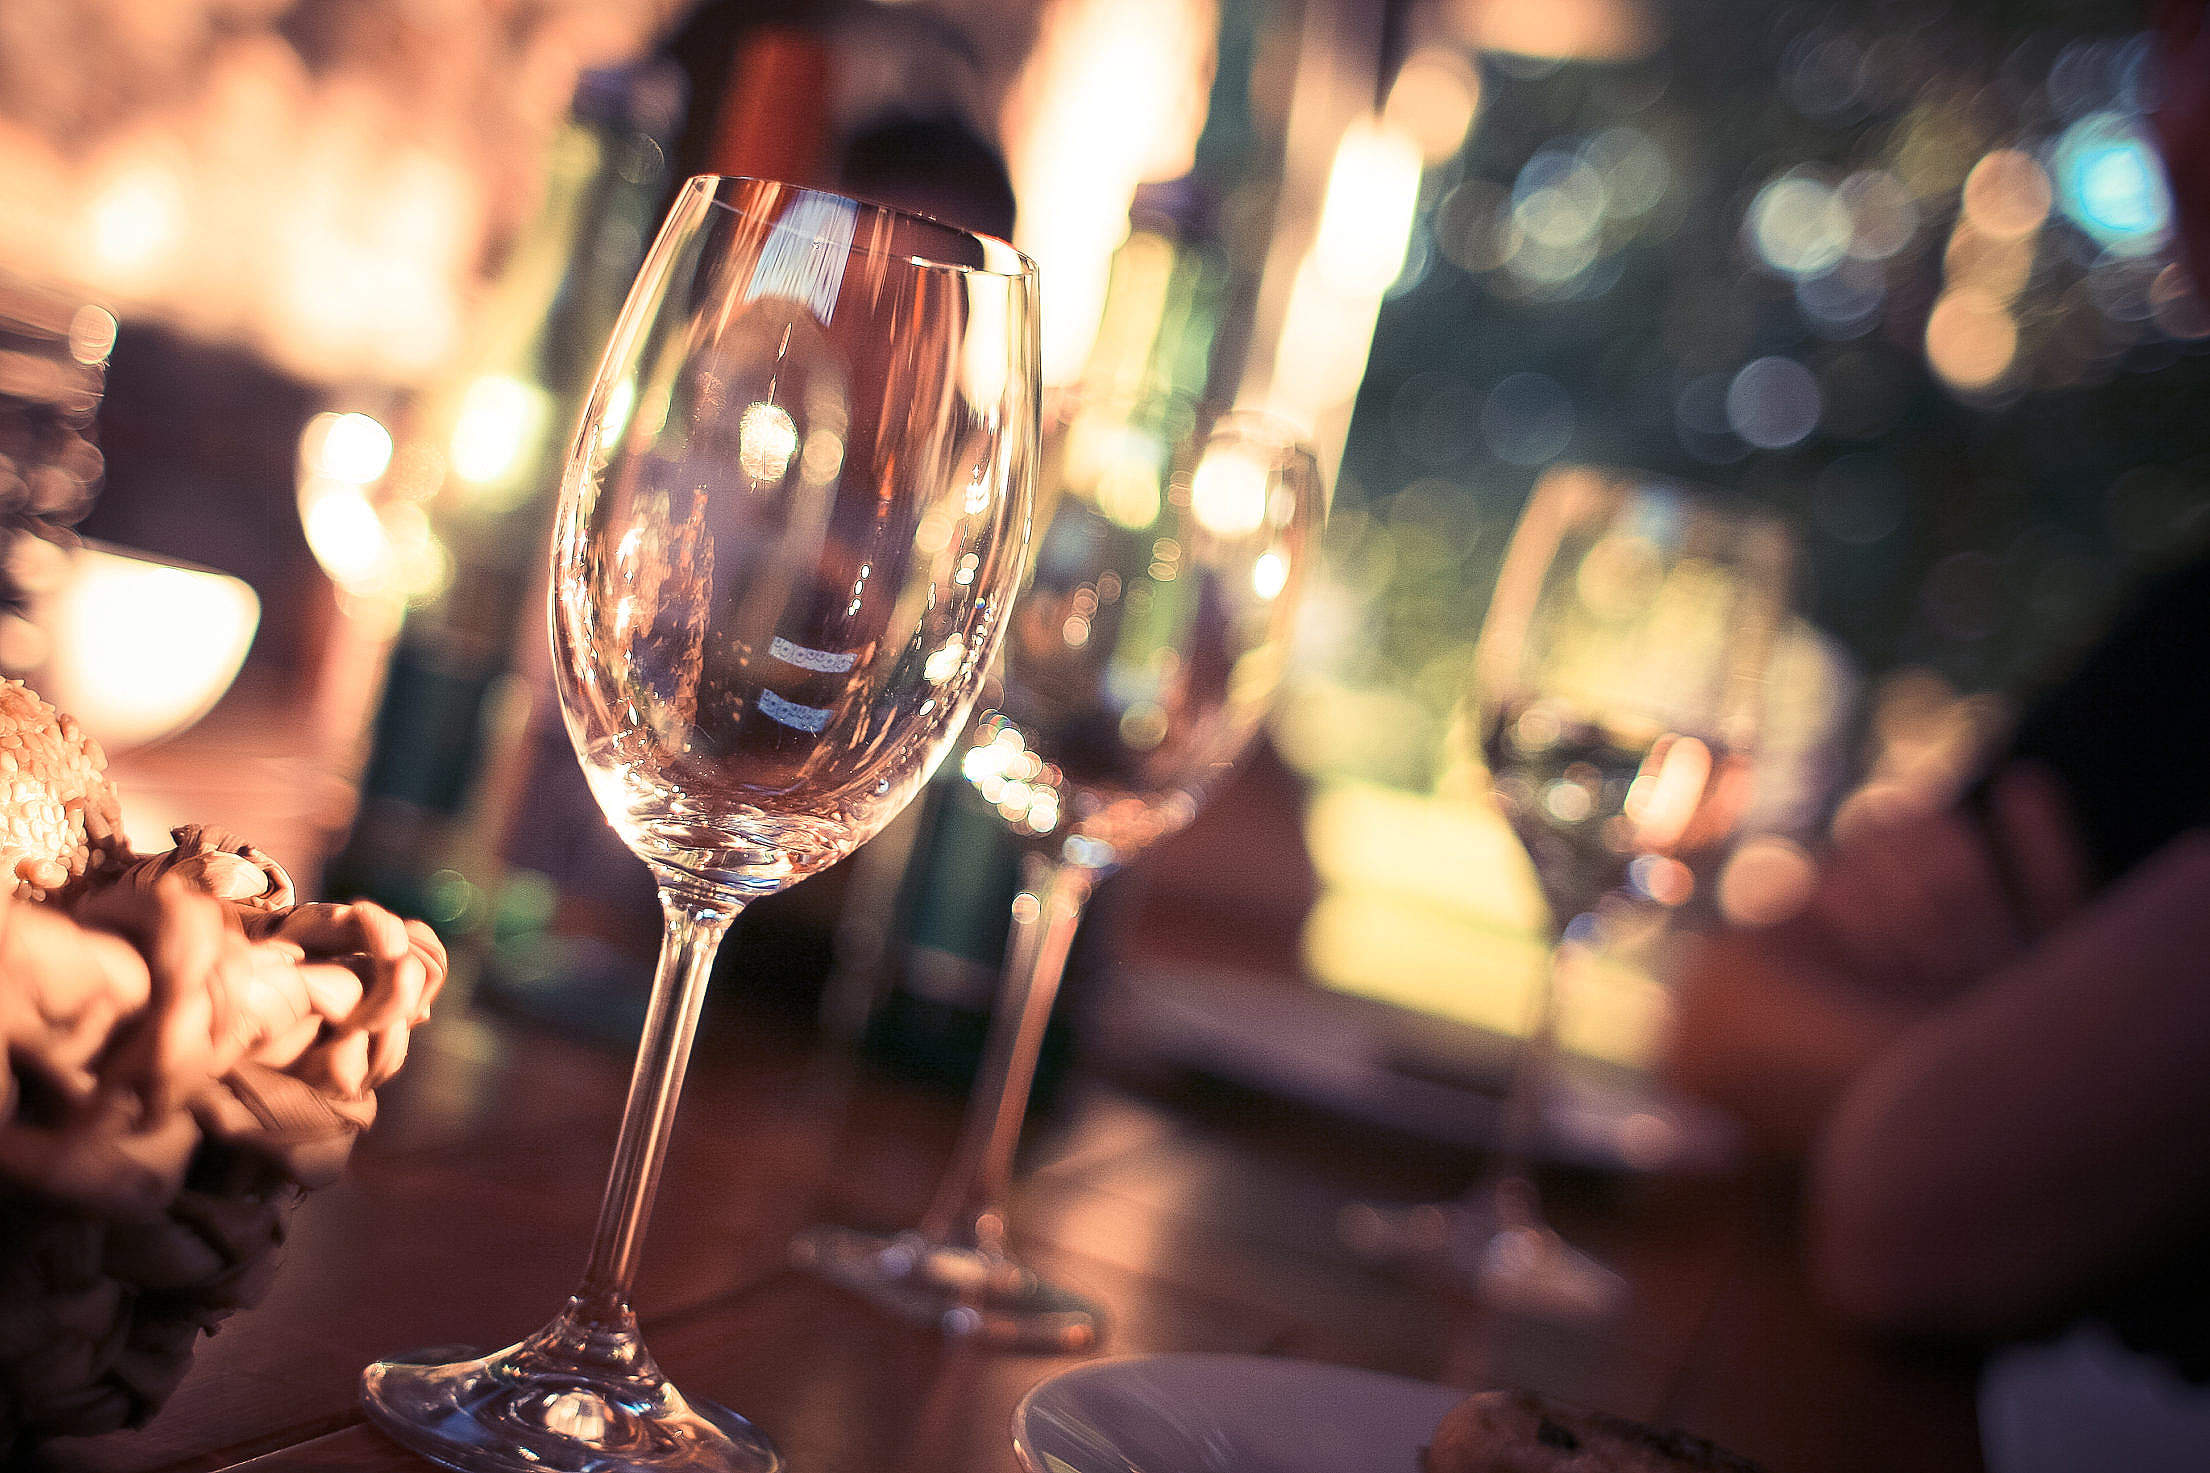 Glass for Wine Gardenparty Free Stock Photo